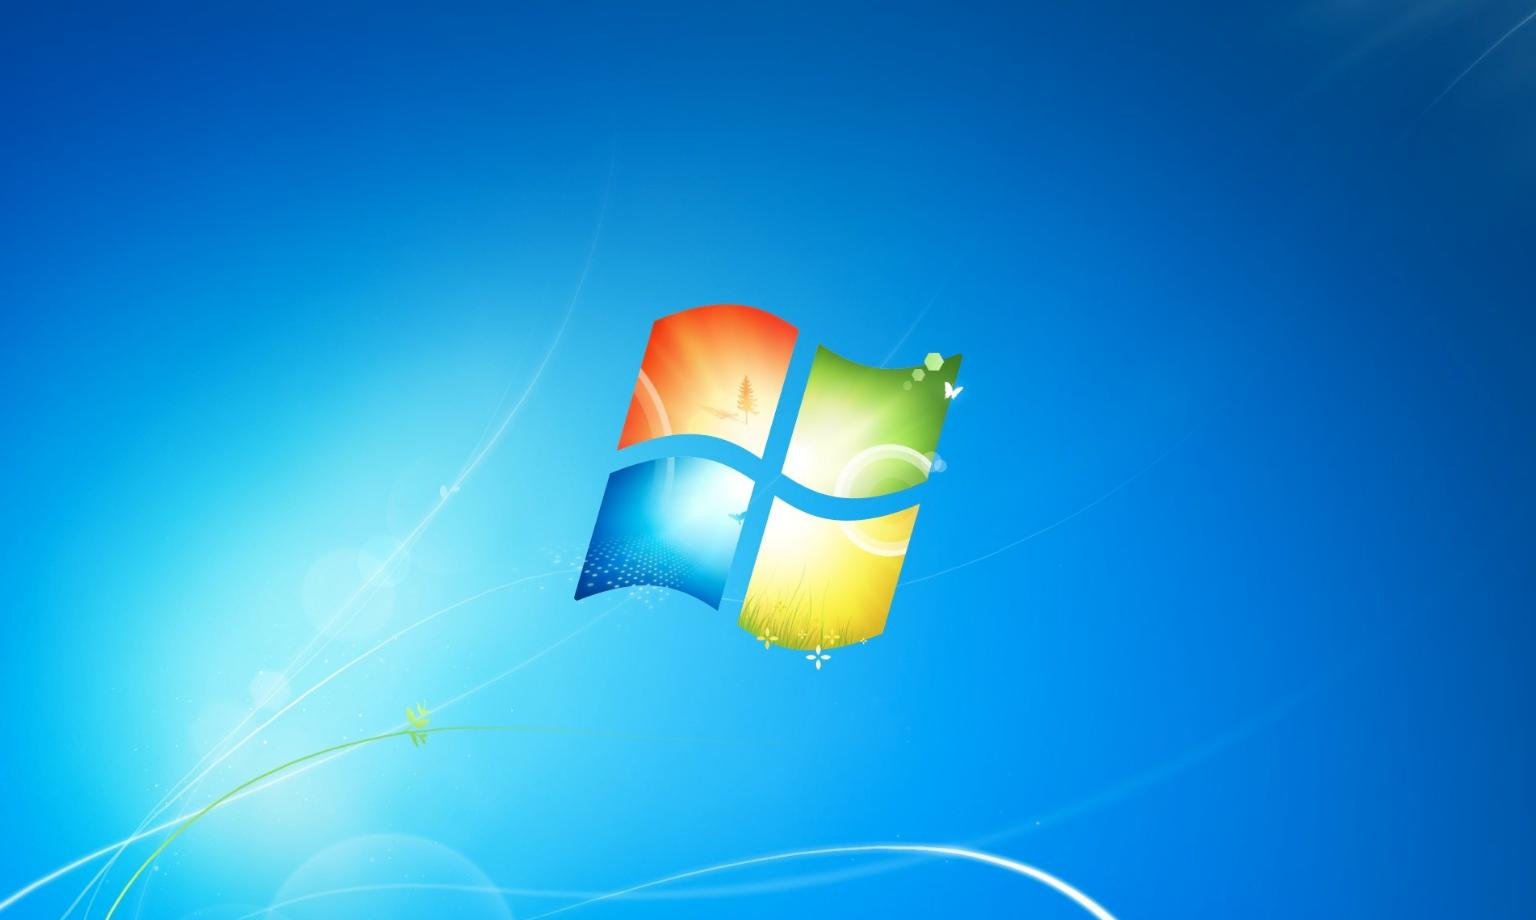 Windows 7 will be retired in January 2020